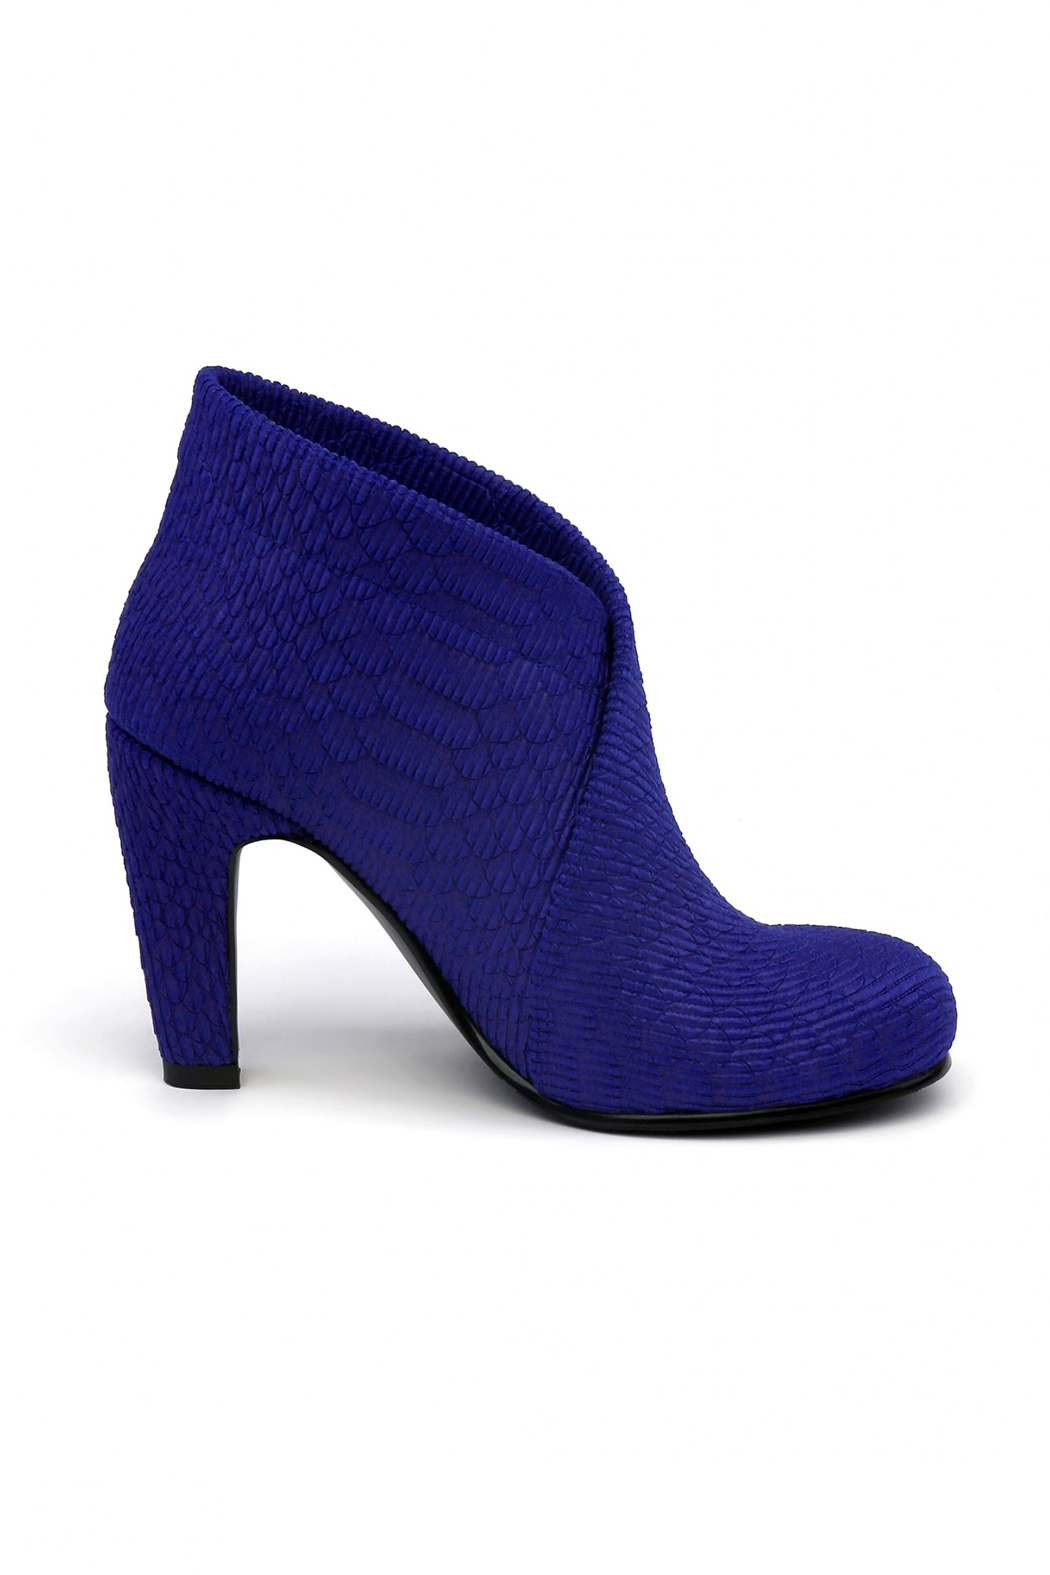 United Nude Fold-Hi Booties - Front Full Image